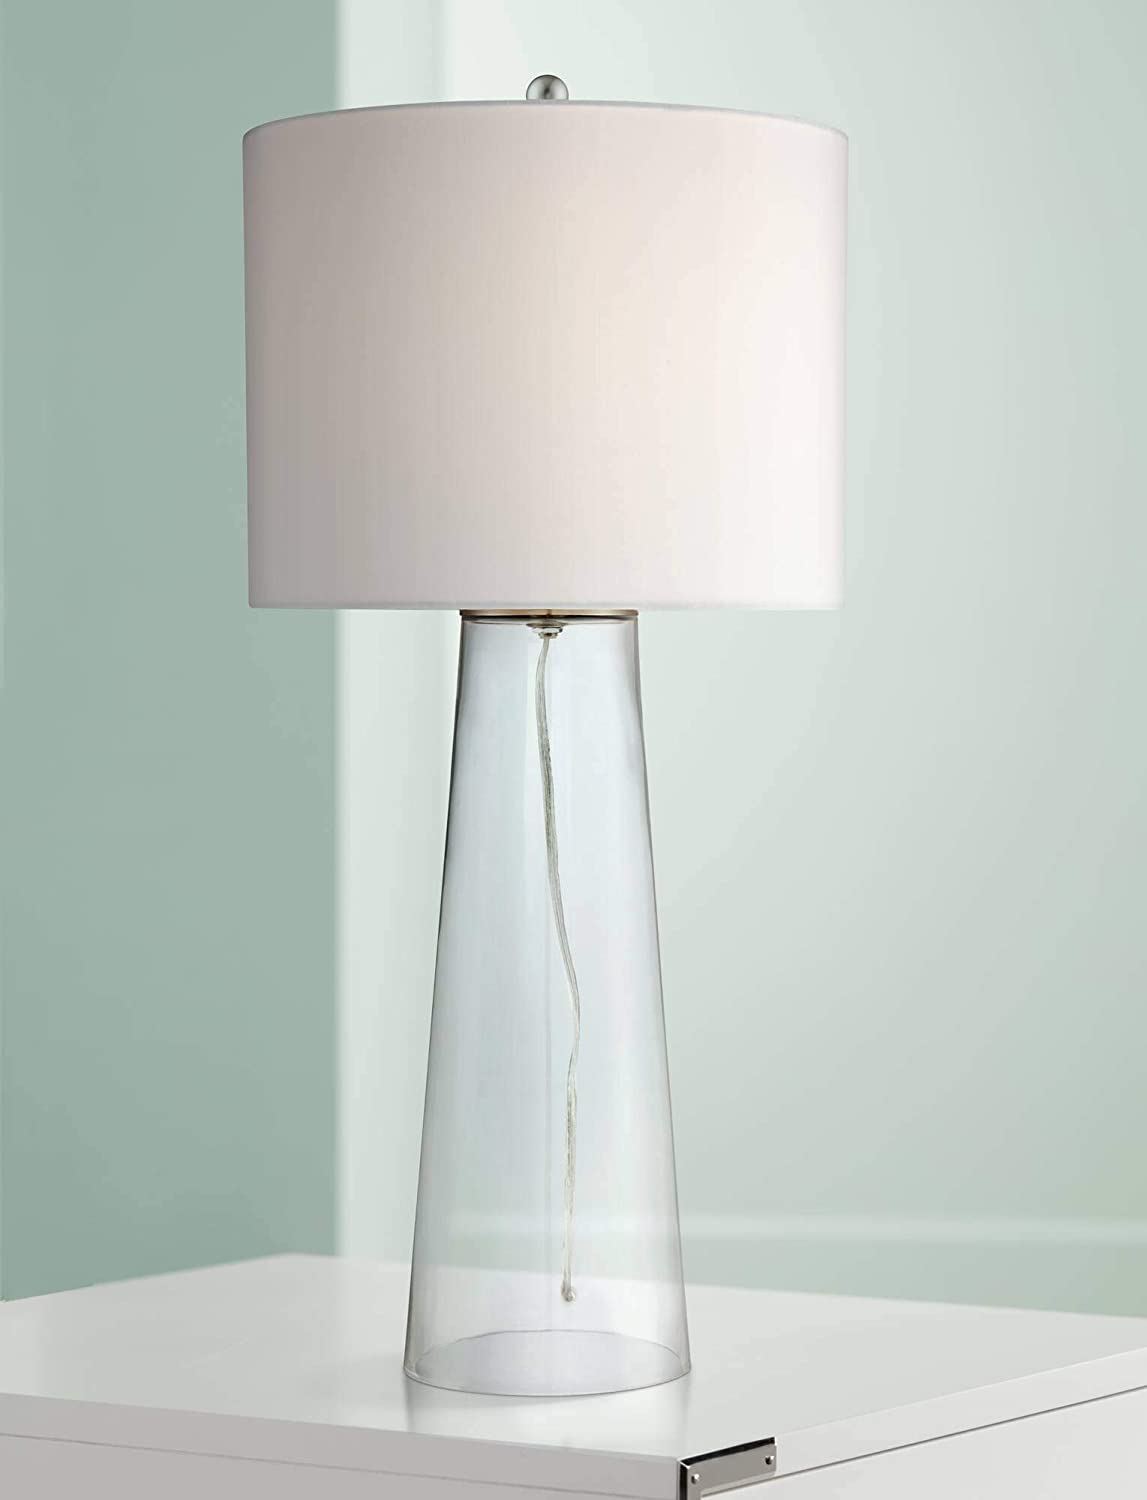 Marcus Coastal Table Lamp Clear Glass Tapered Column White Drum Shade for Living Room Family Bedroom Bedside Nightstand - 360 Lighting